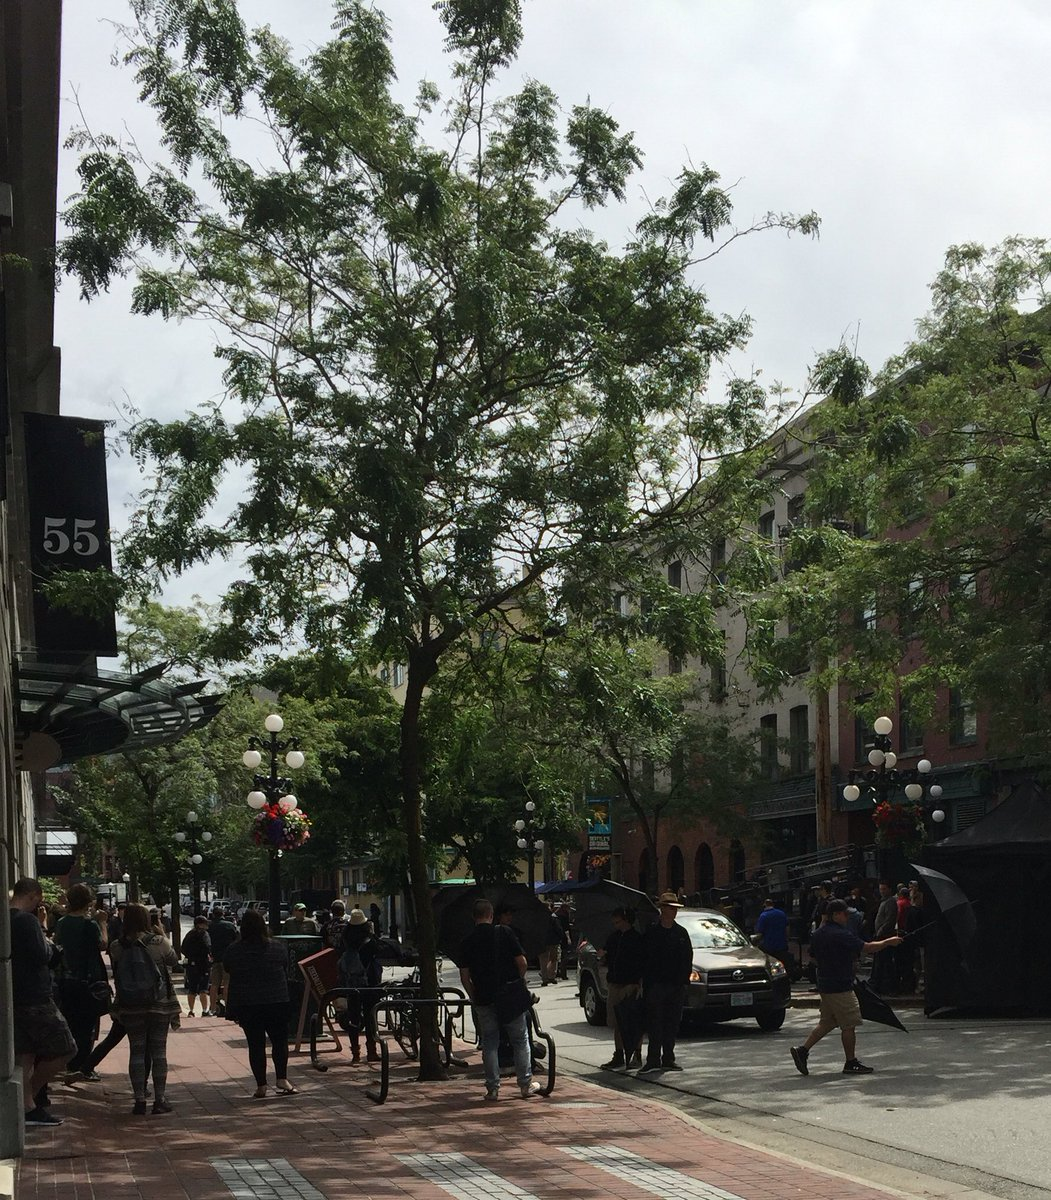 Hole punch clouds AND Jamie Dornan outside my front door. It's a good Monday #50shadesfilming #gastown https://t.co/REDpzp8GCE